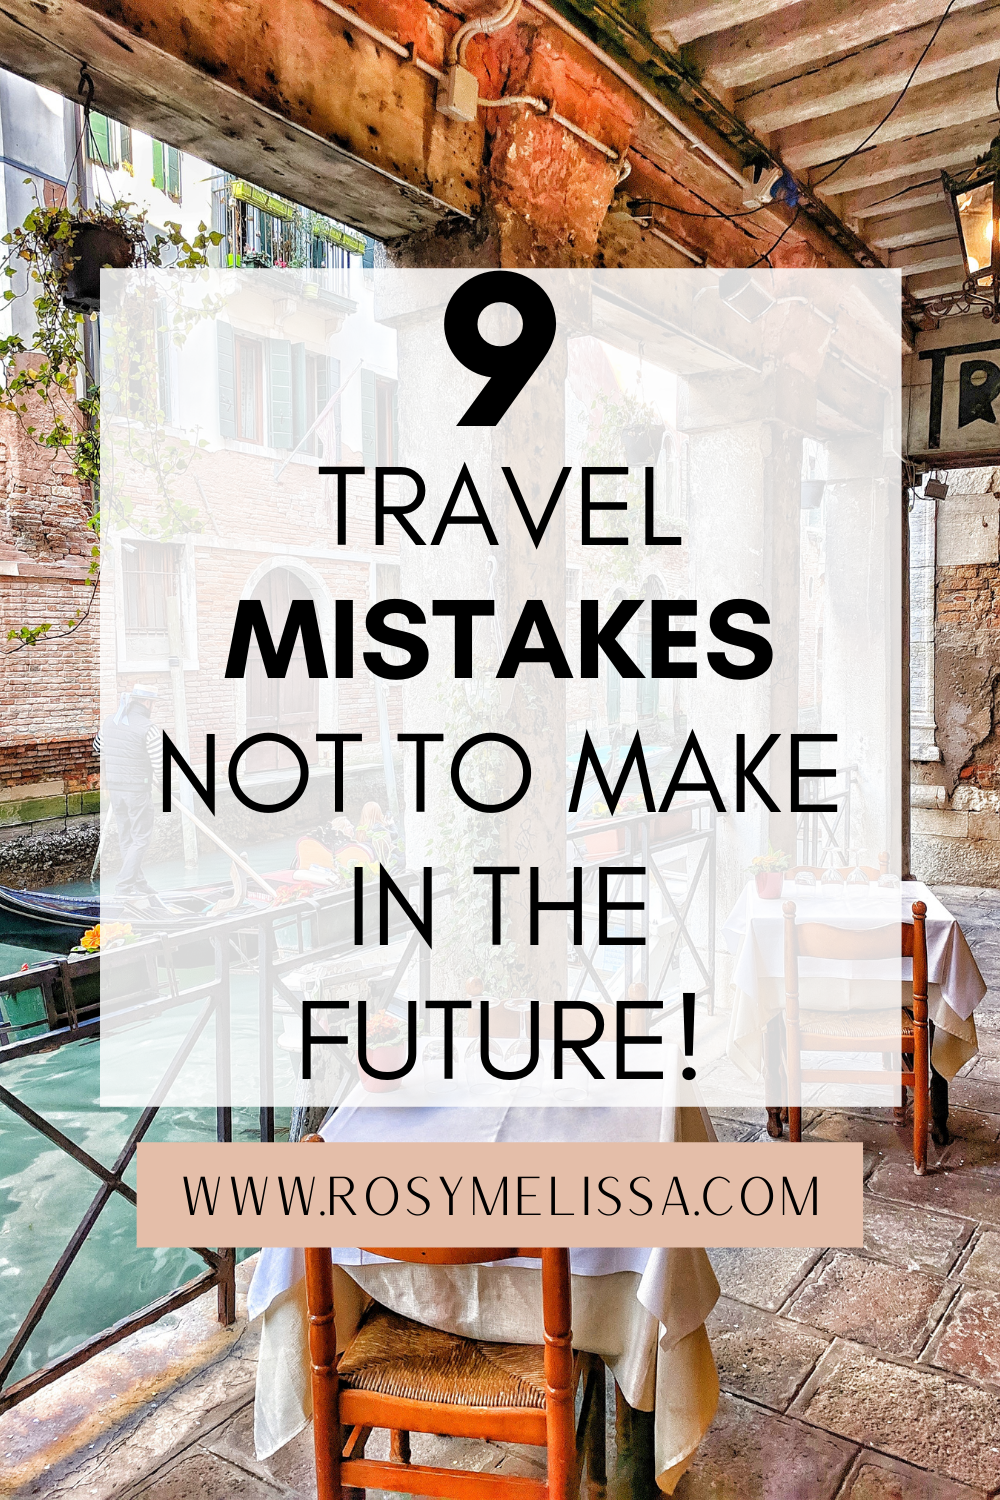 travel mistakes to avoid making, travel tips, travel mistakes not to make